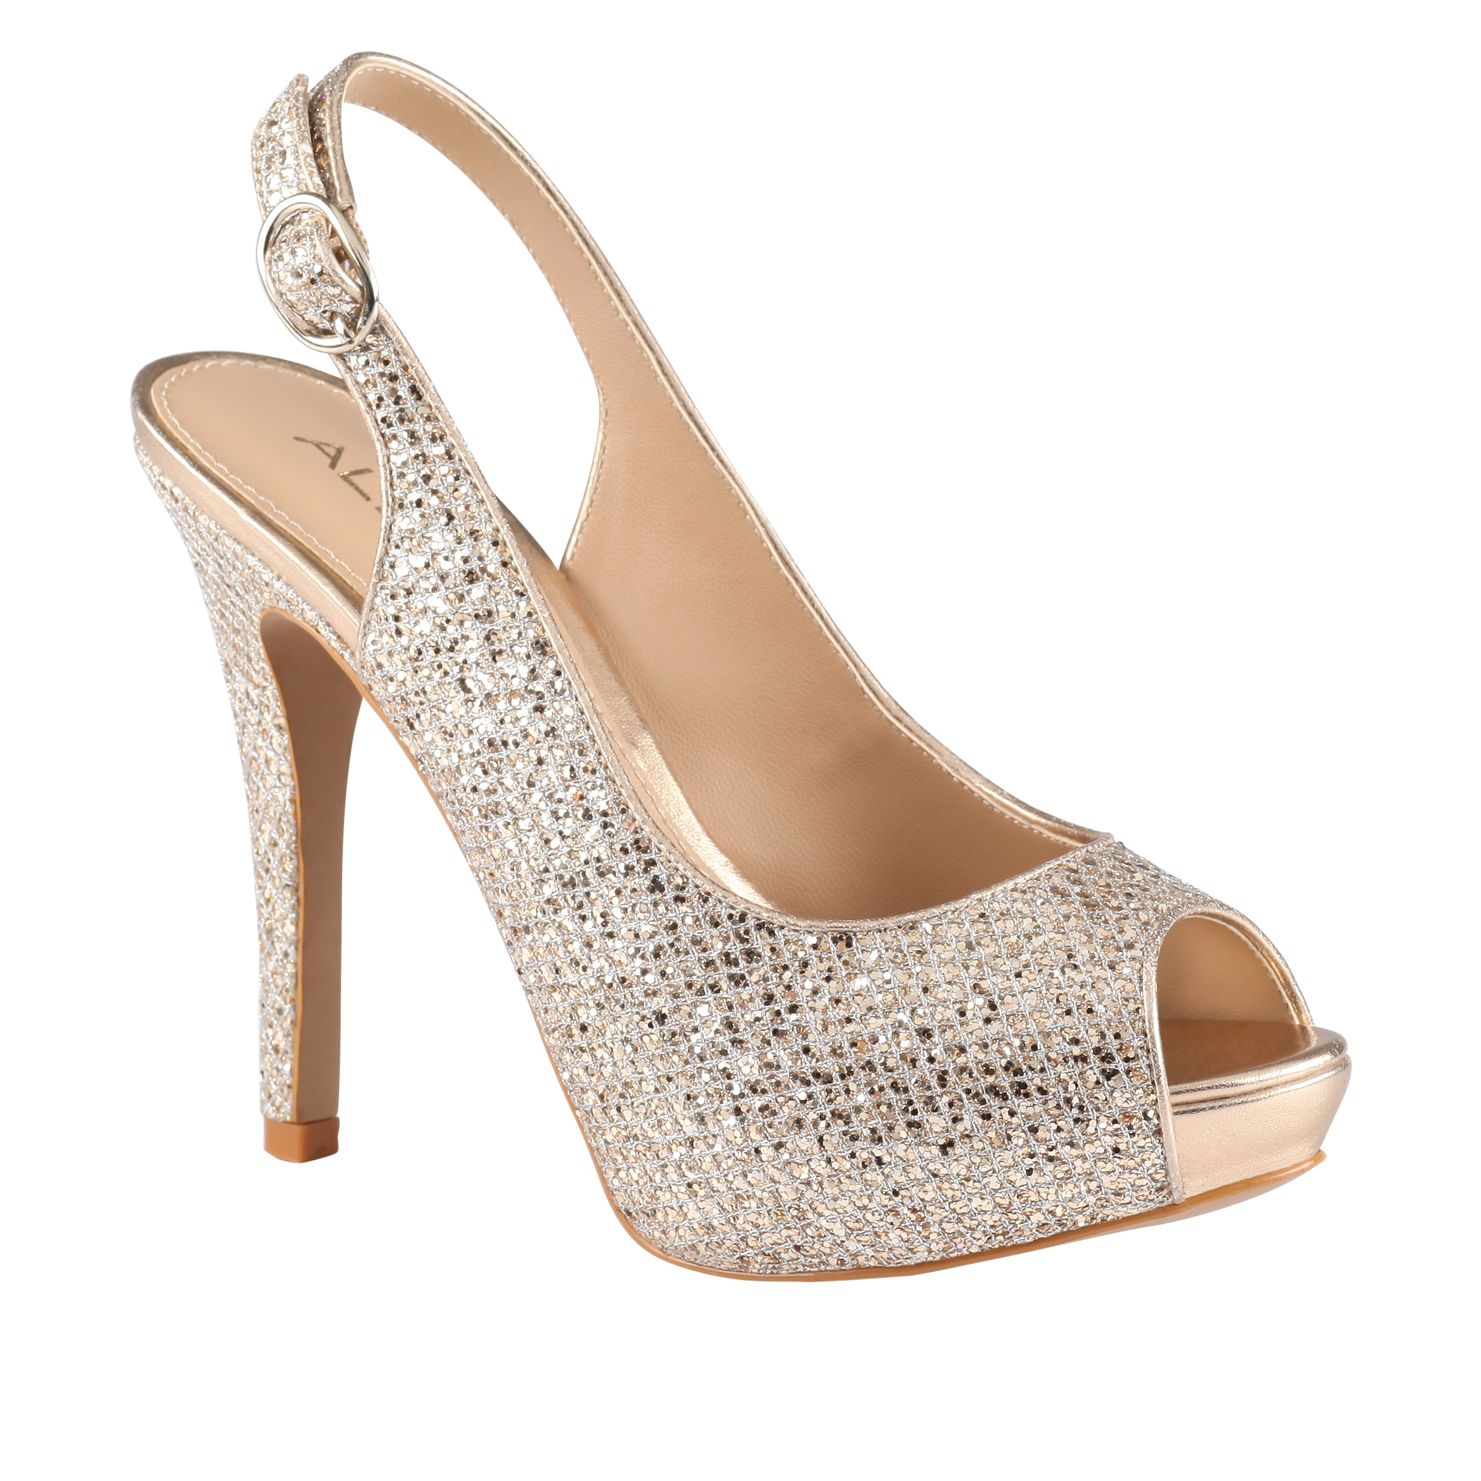 Britany peep toe high heel court shoes